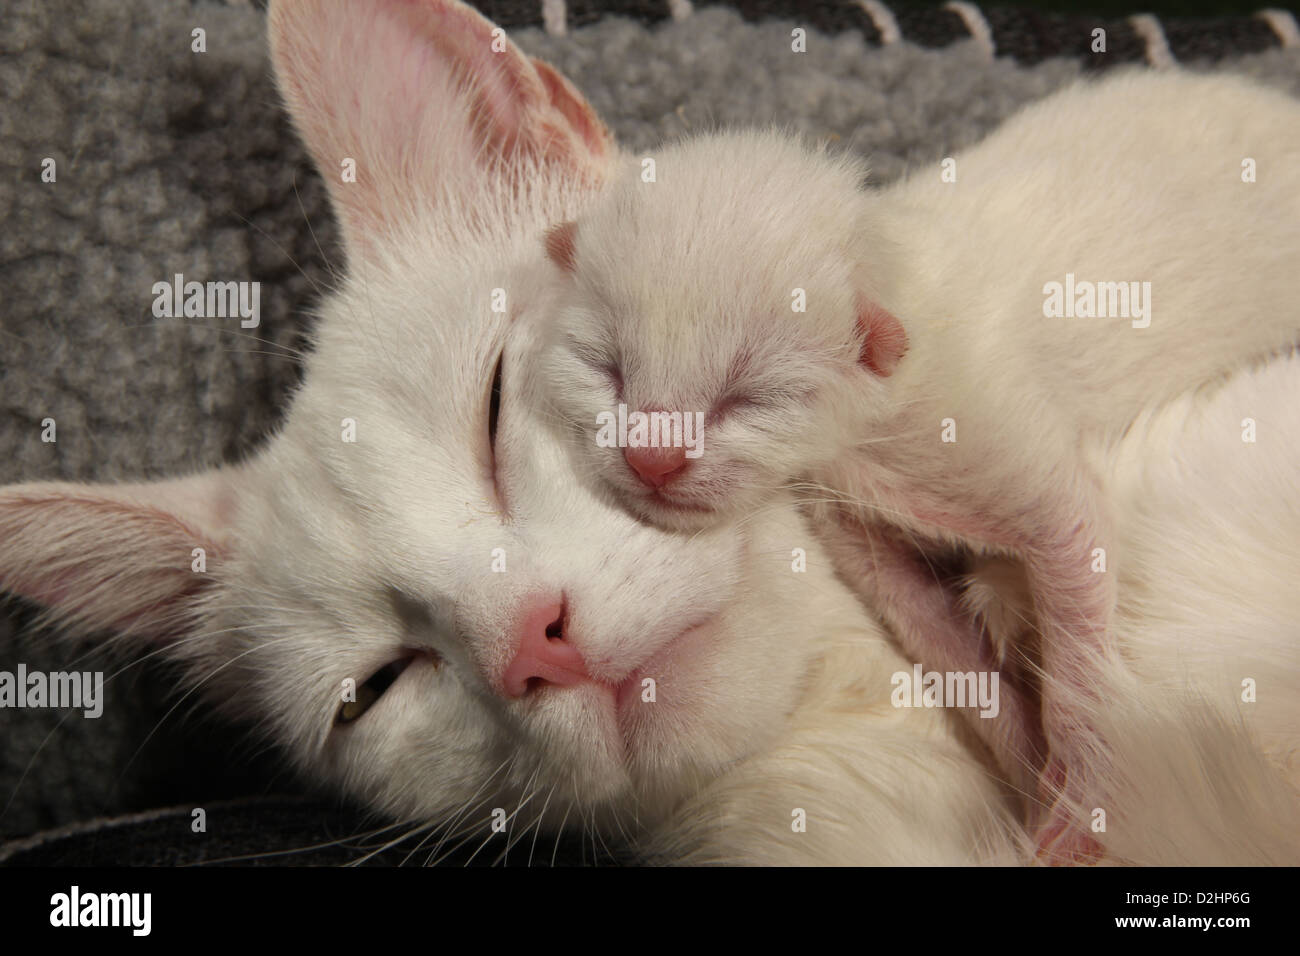 Domestic Cat White cat with newborn kittens 2 days old Stock